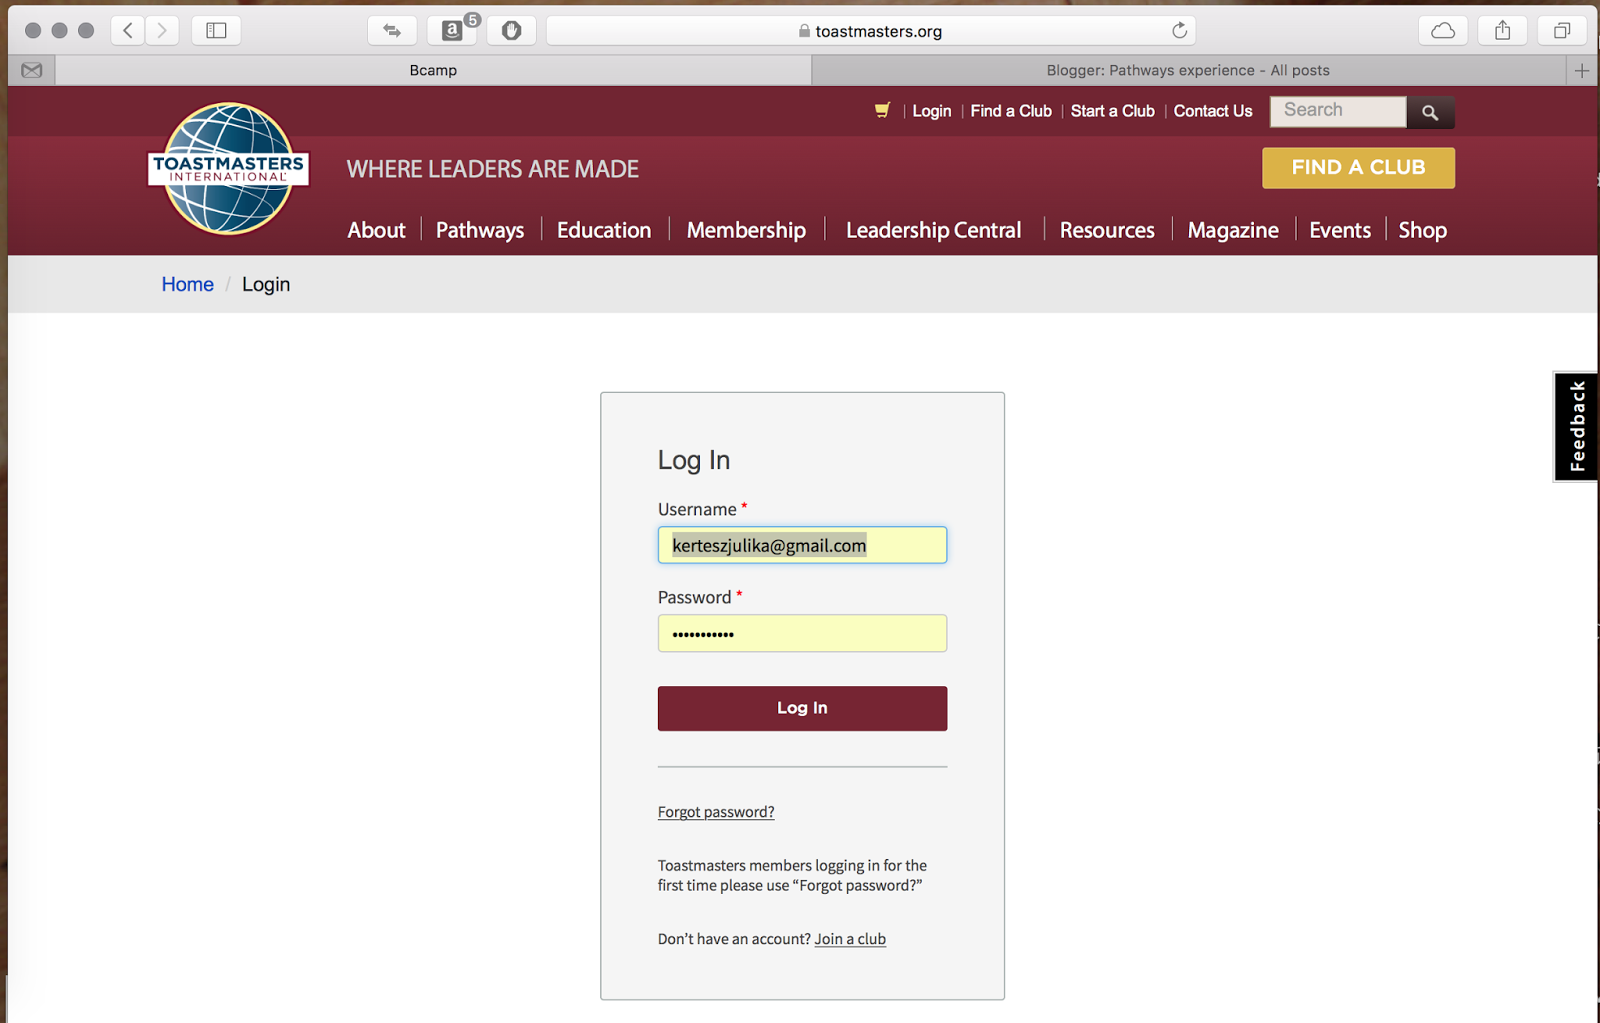 Pathways experience: Login to Toastmasters org and Sample